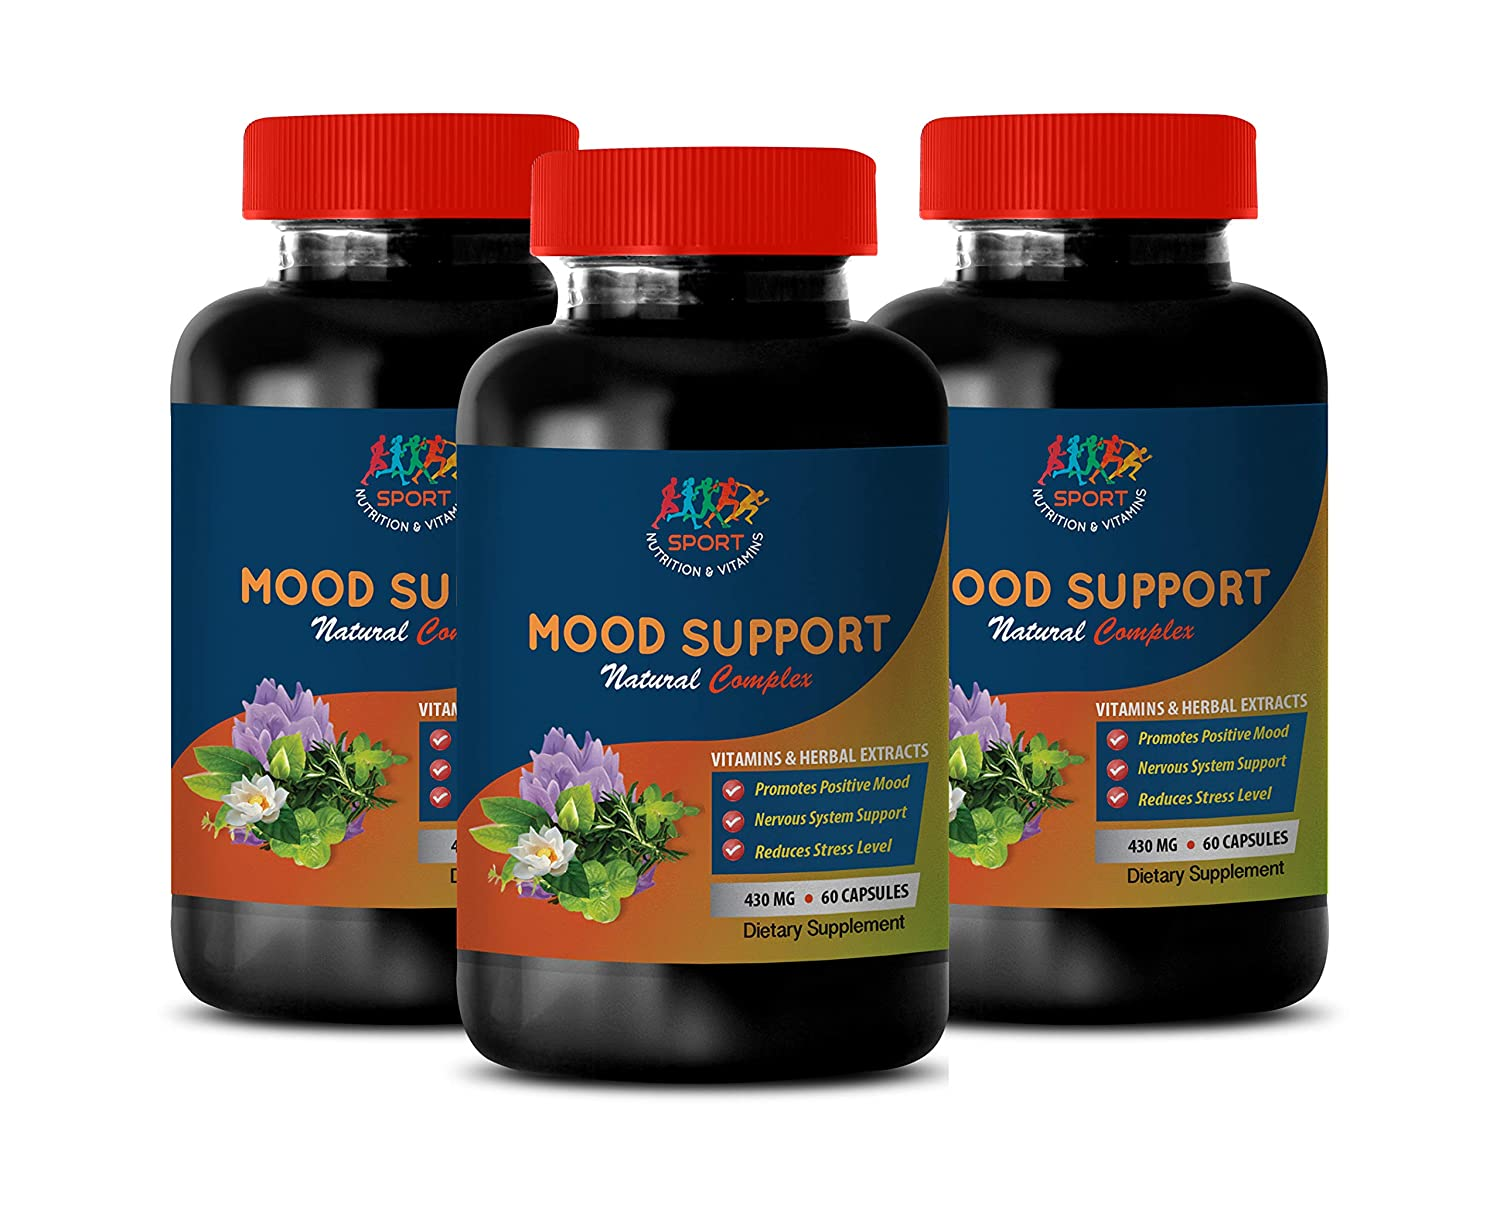 Mood Enhancing Supplements - Mood Support Natural Complex - Vitamins and Herbal EXTRACTS - folic Acid and b Complex - 3 Bottles 180 Vegetable Capsules